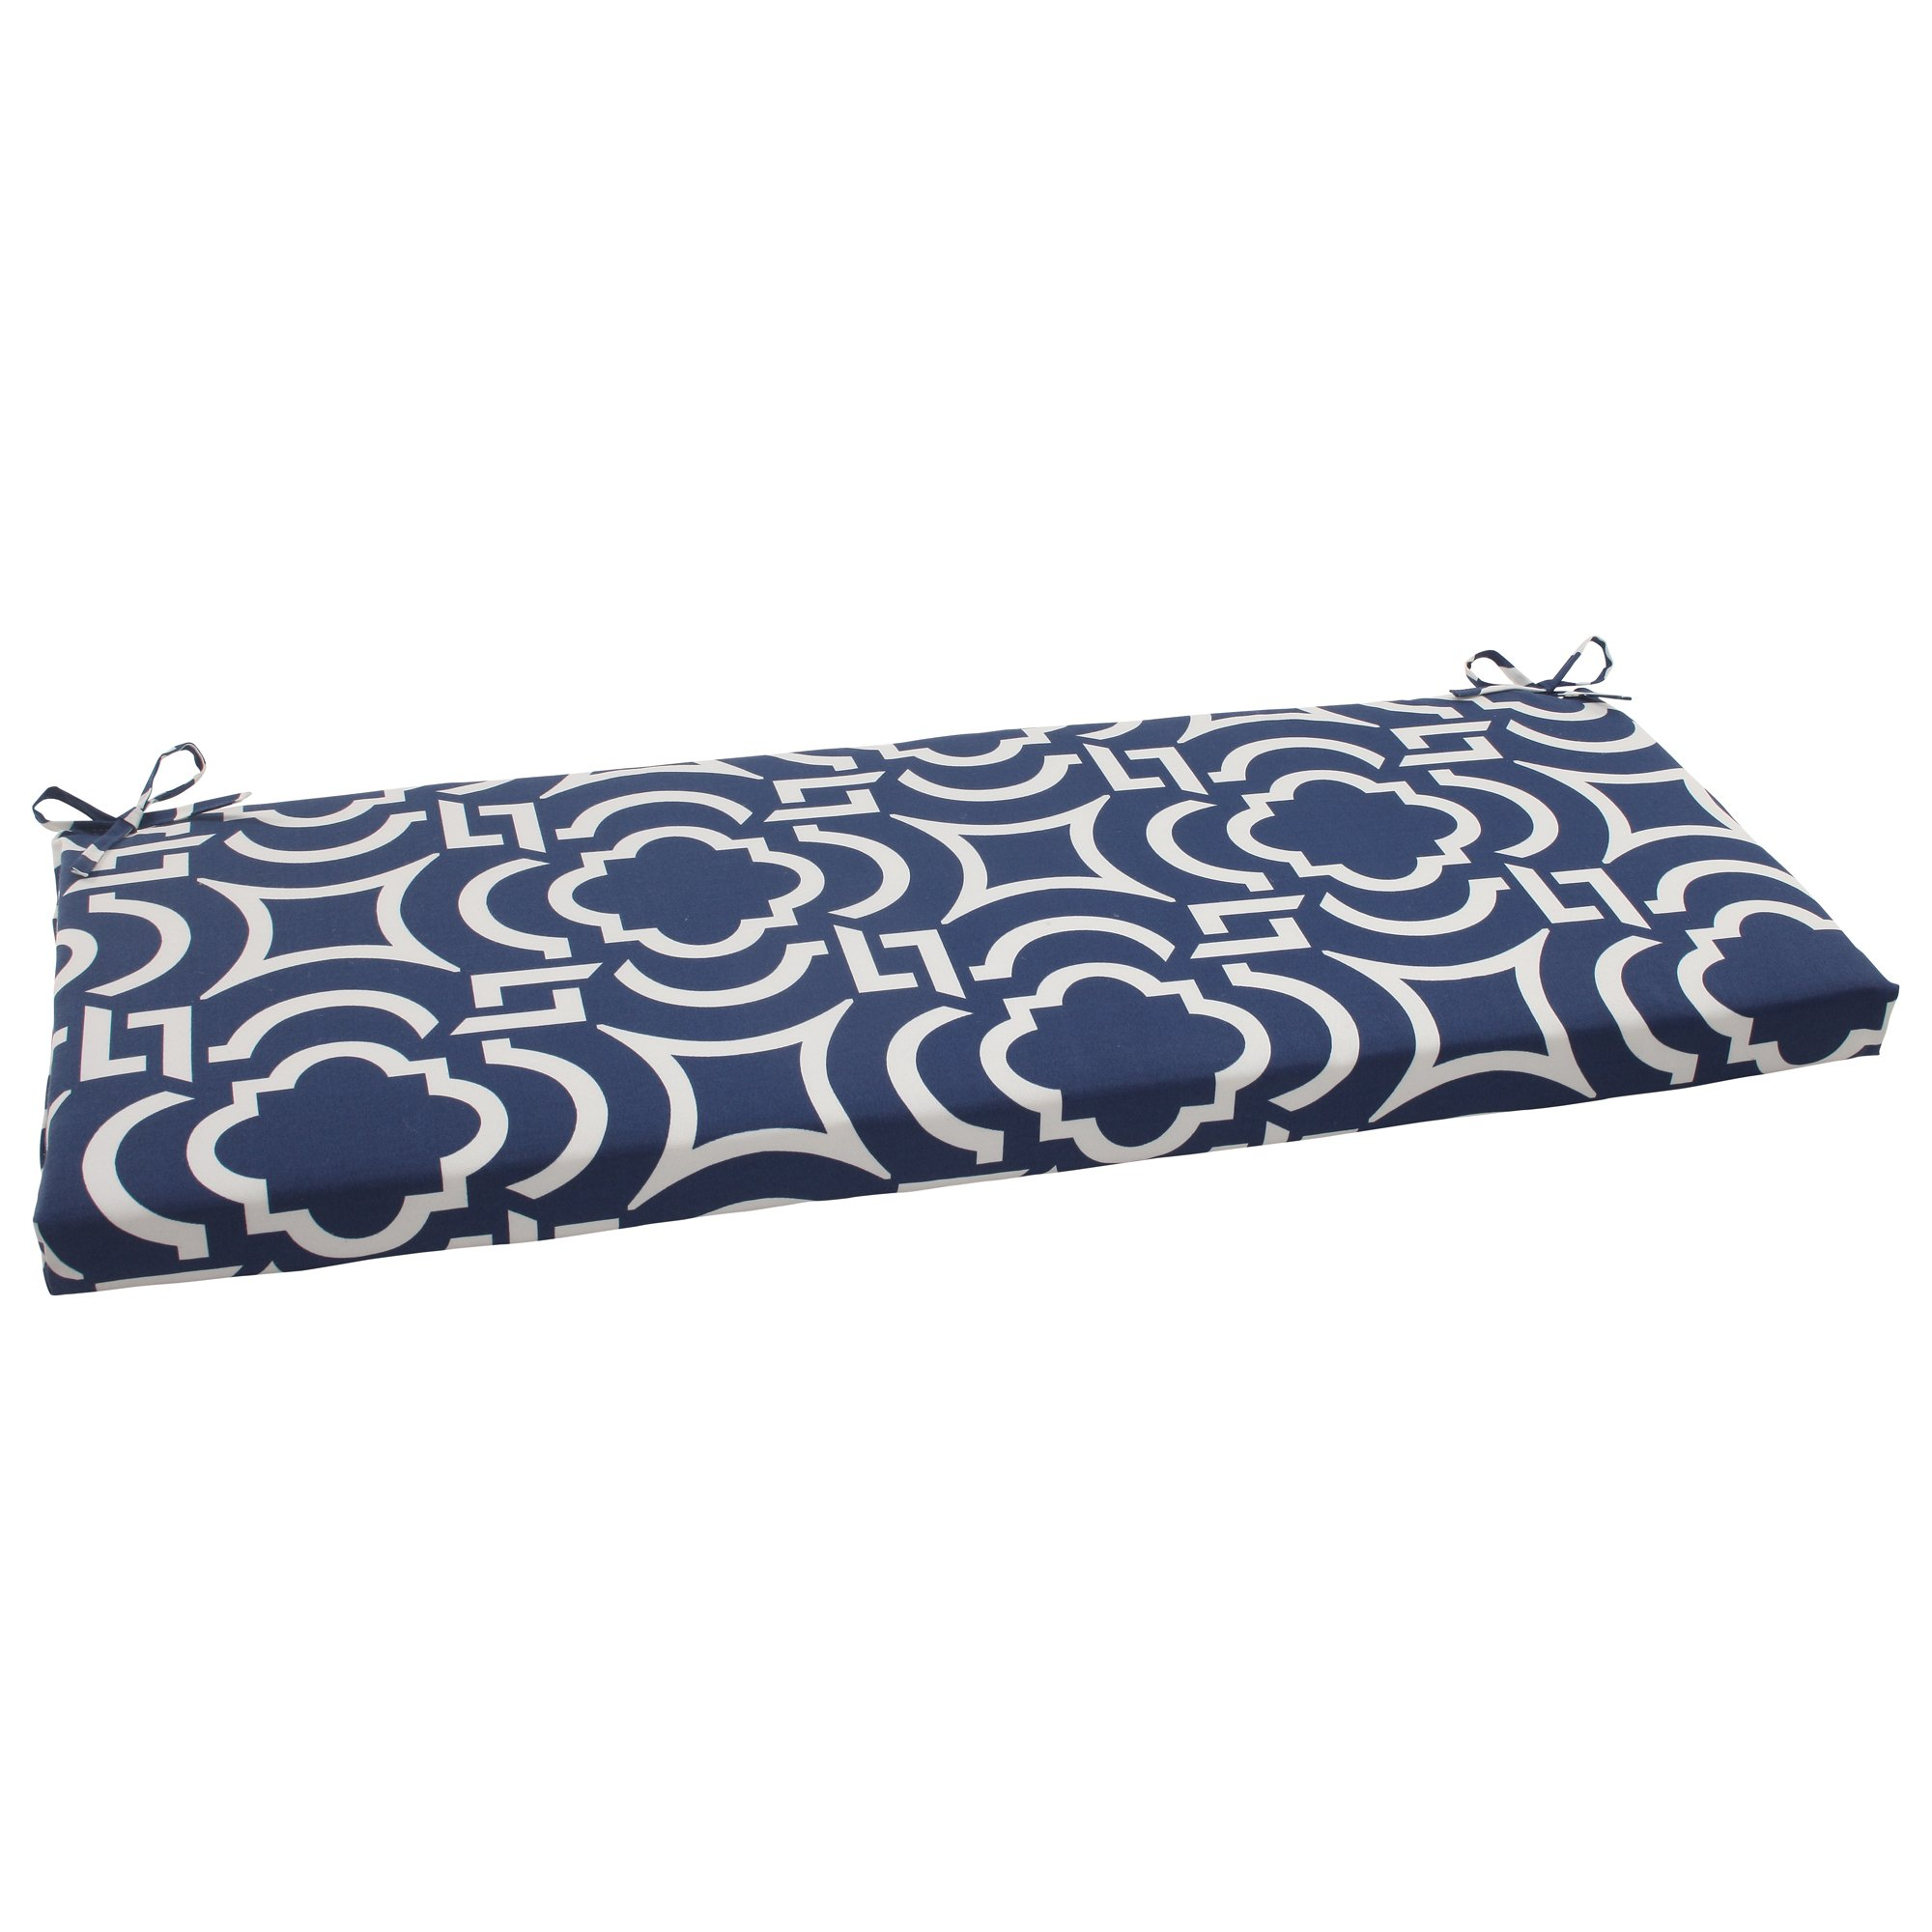 Pillow Perfect Indoor/Outdoor Carmody Bench Cushion, Navy by Pillow Perfect